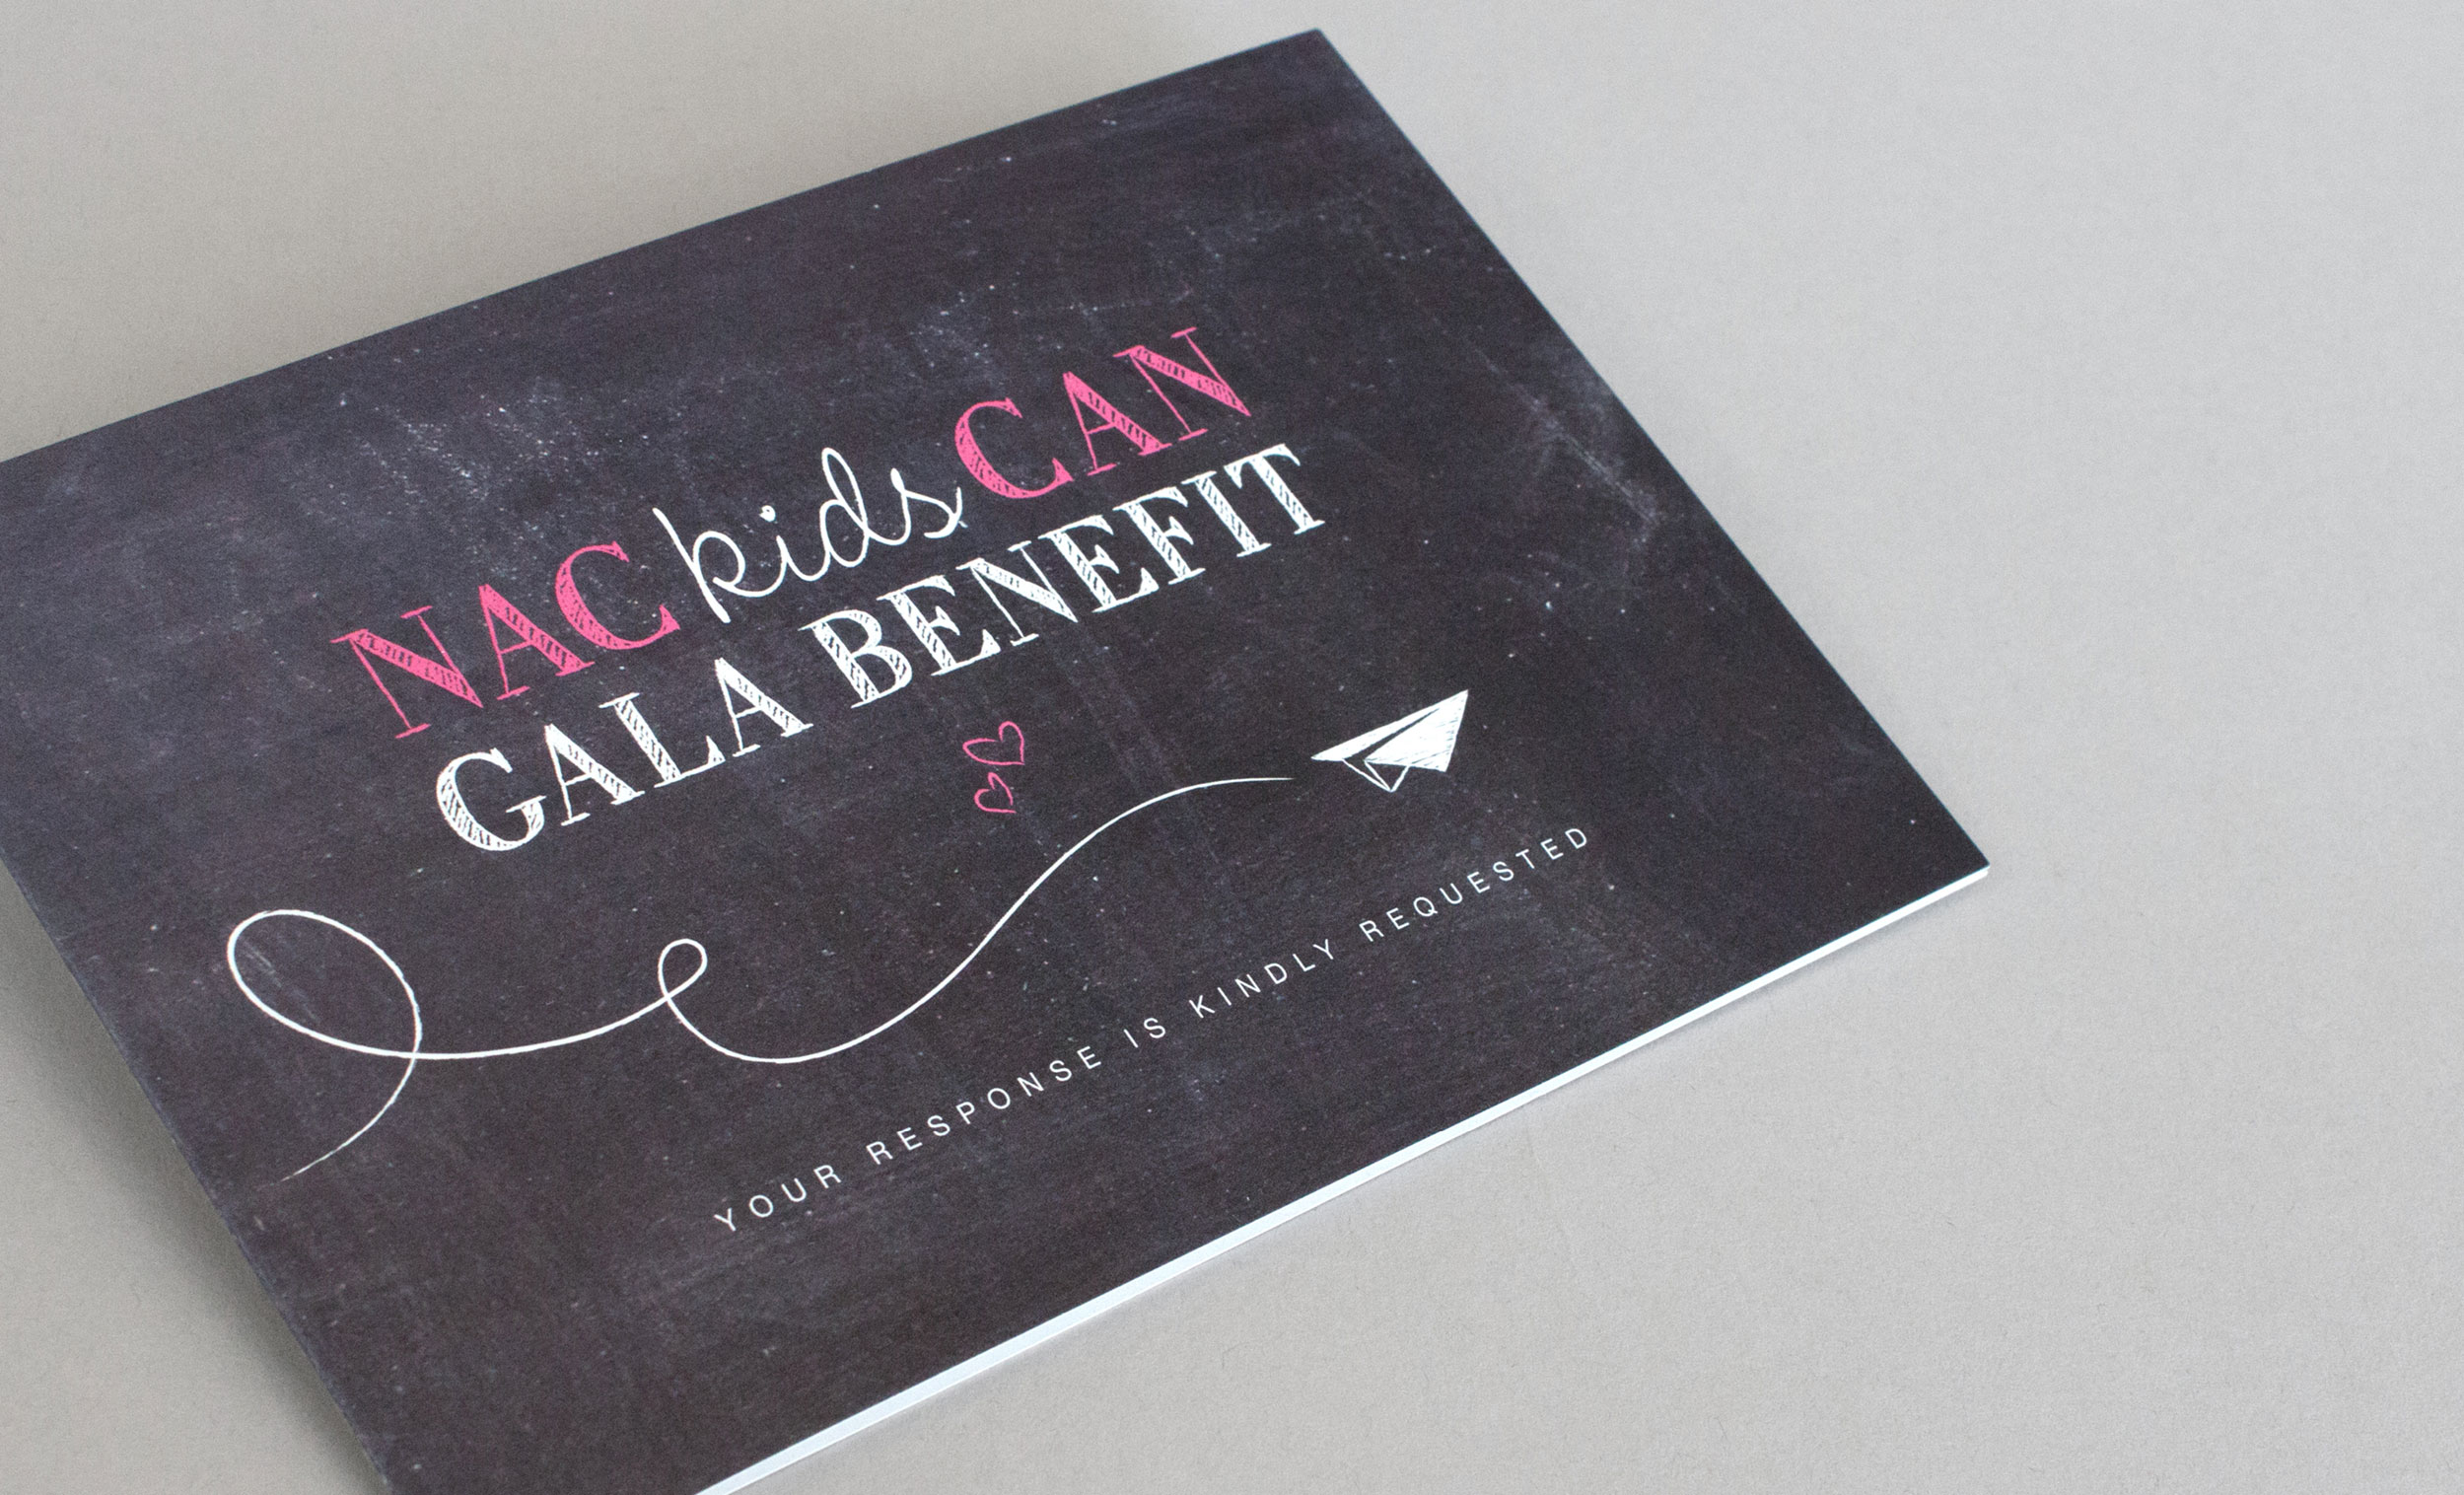 non-profit gala event branding rsvp card chalkboard texture